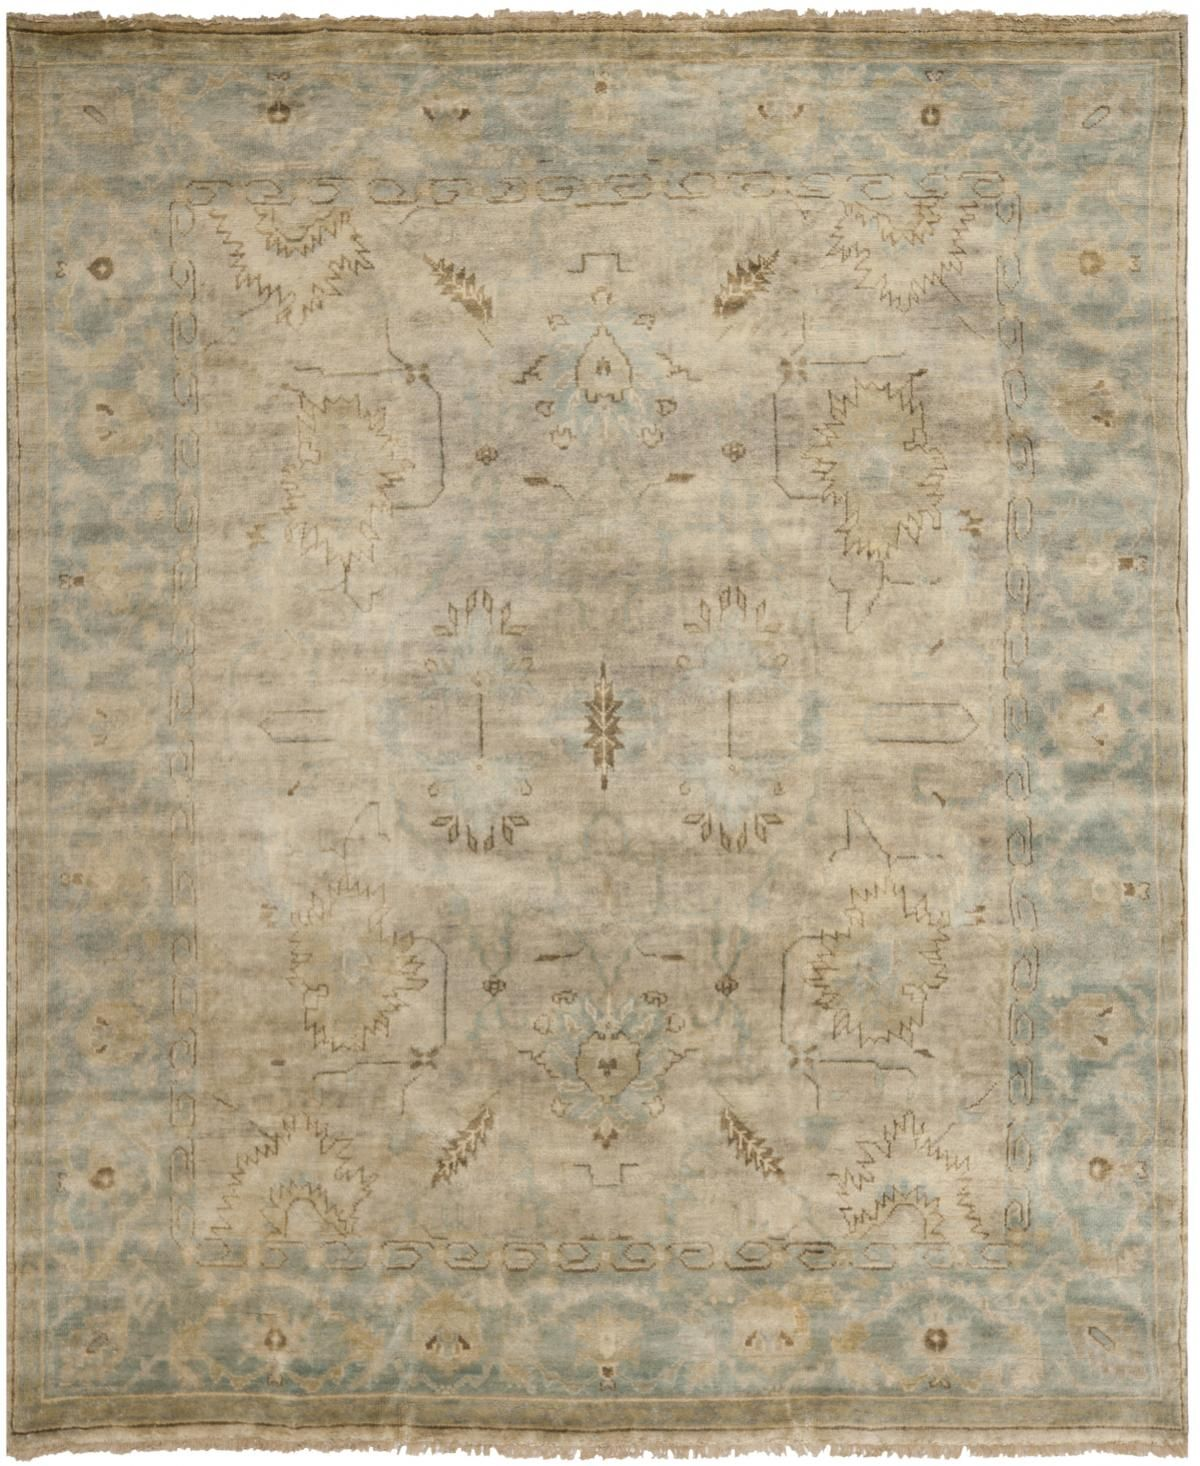 rug osh562a oushak area rugs by rug weaves and wool rug rug osh562a oushak area rugs by